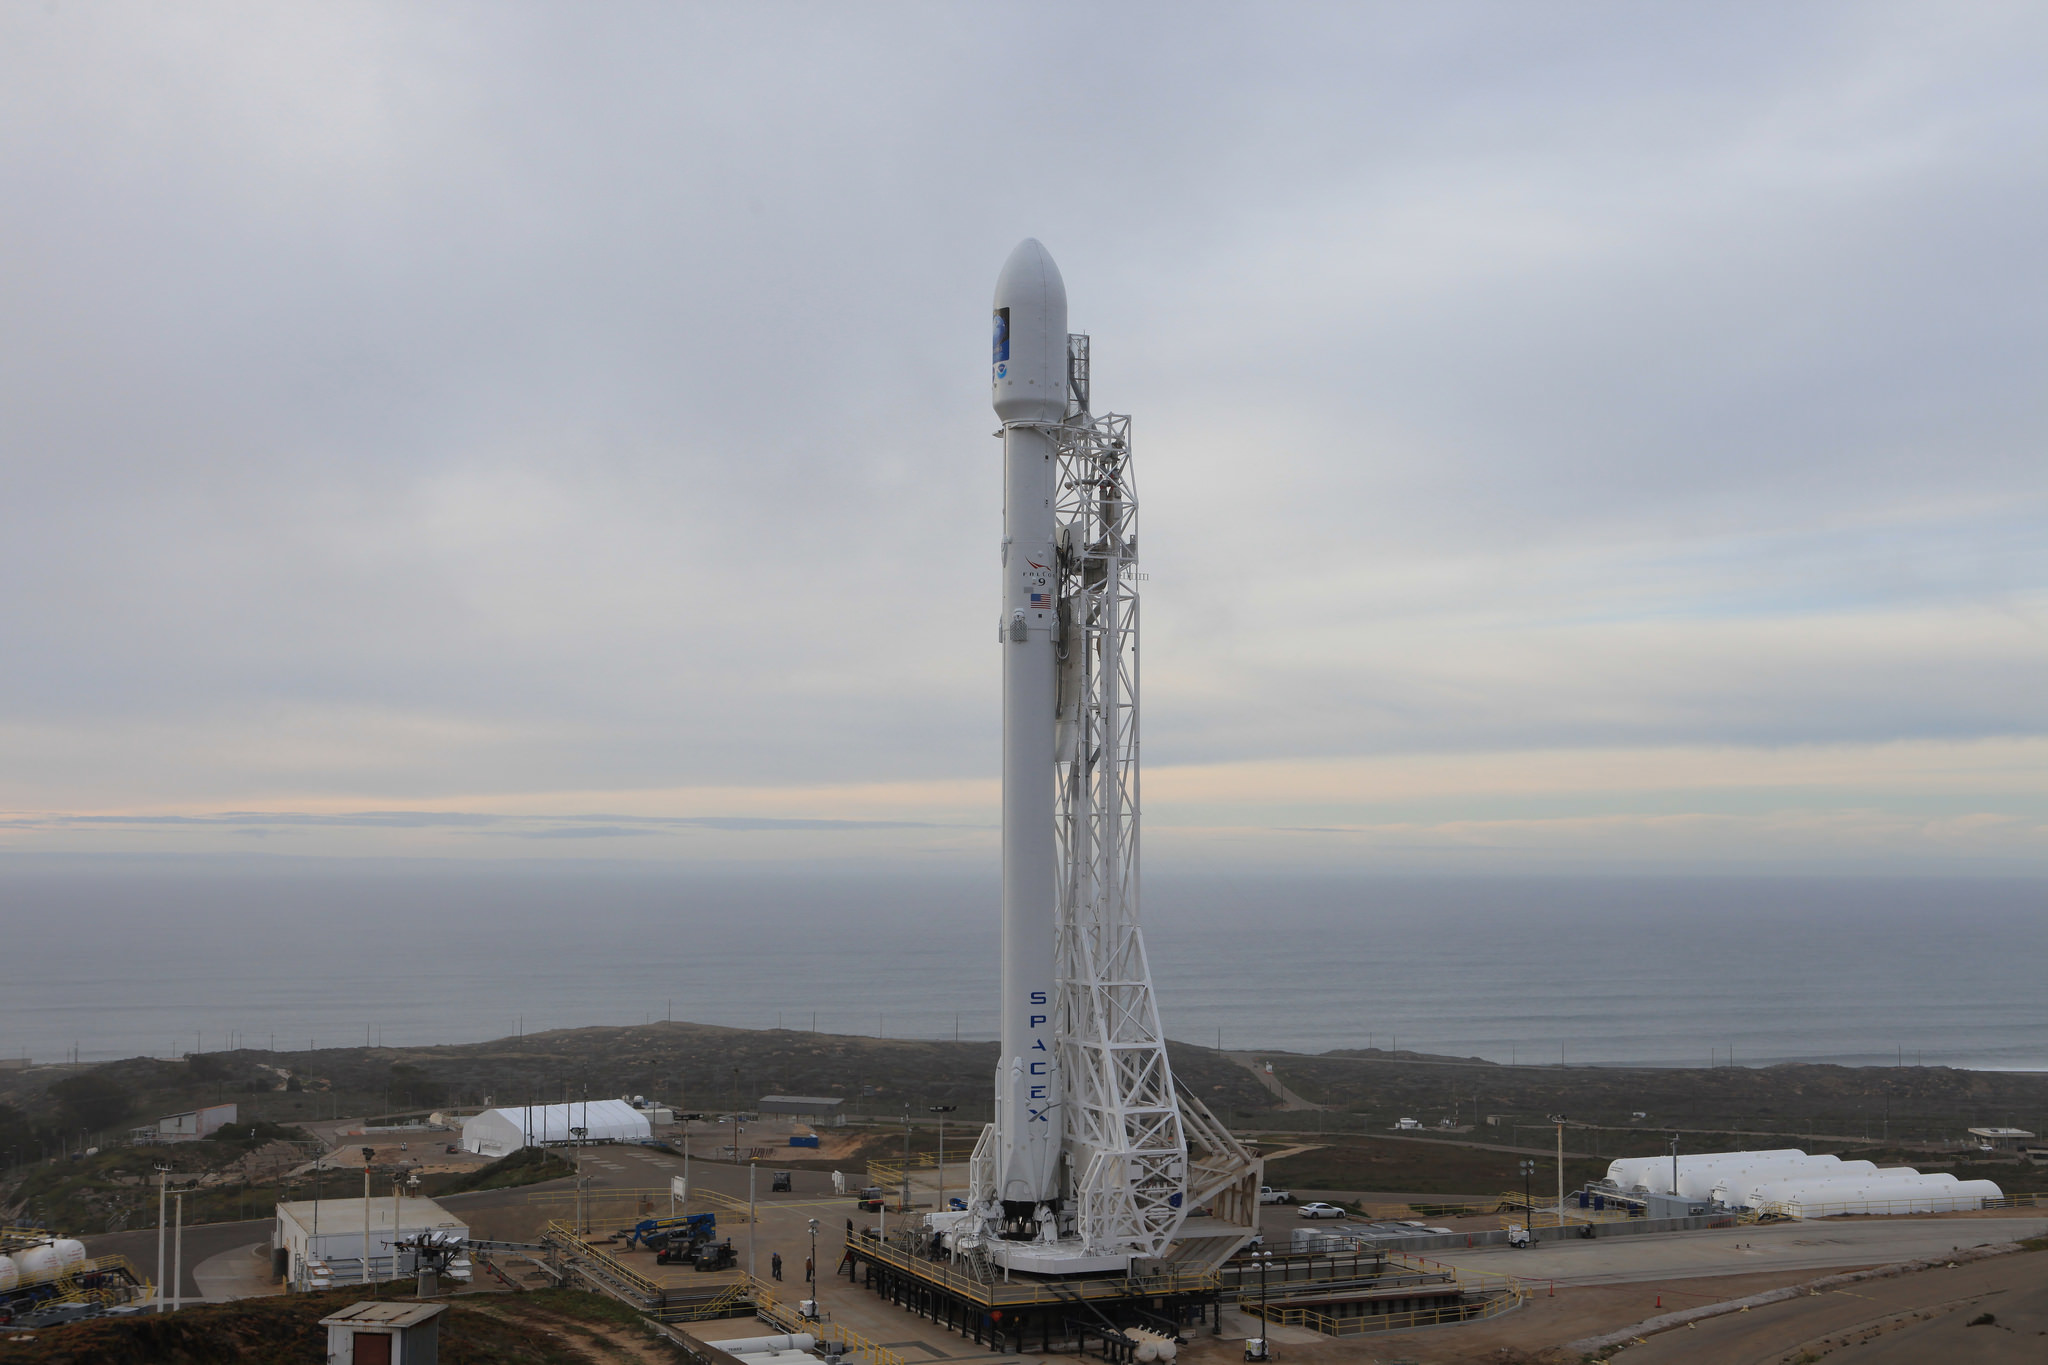 SpaceX's Falcon 9 Rocket completes Static Fire Test ahead ...